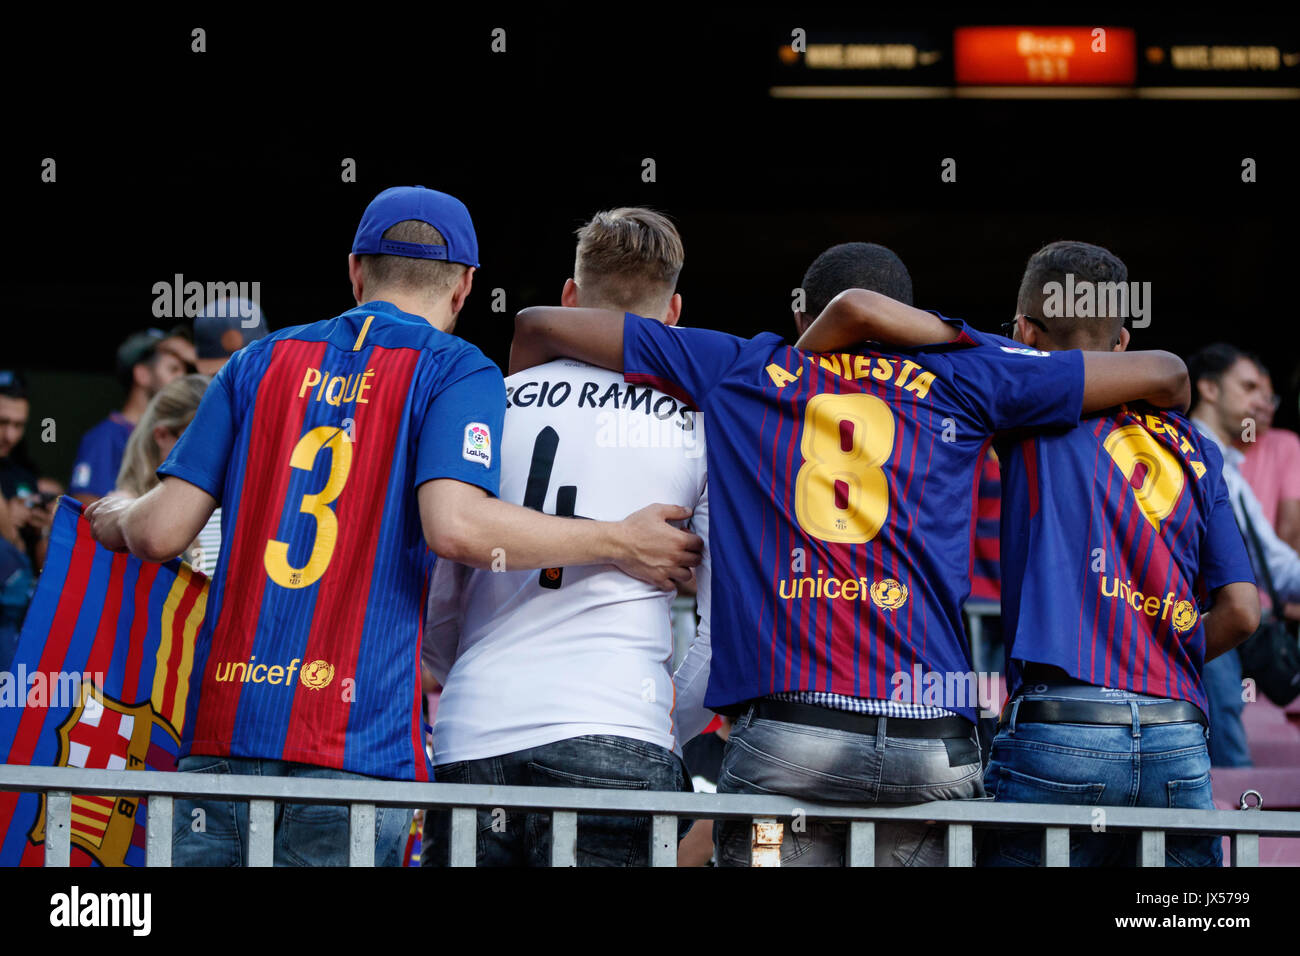 Camp Nou Stadium, Barcelona, Spain. 13th of August, 2017. Super Cup of Spain between FC Barcelona and Real Madrid. - Stock Image